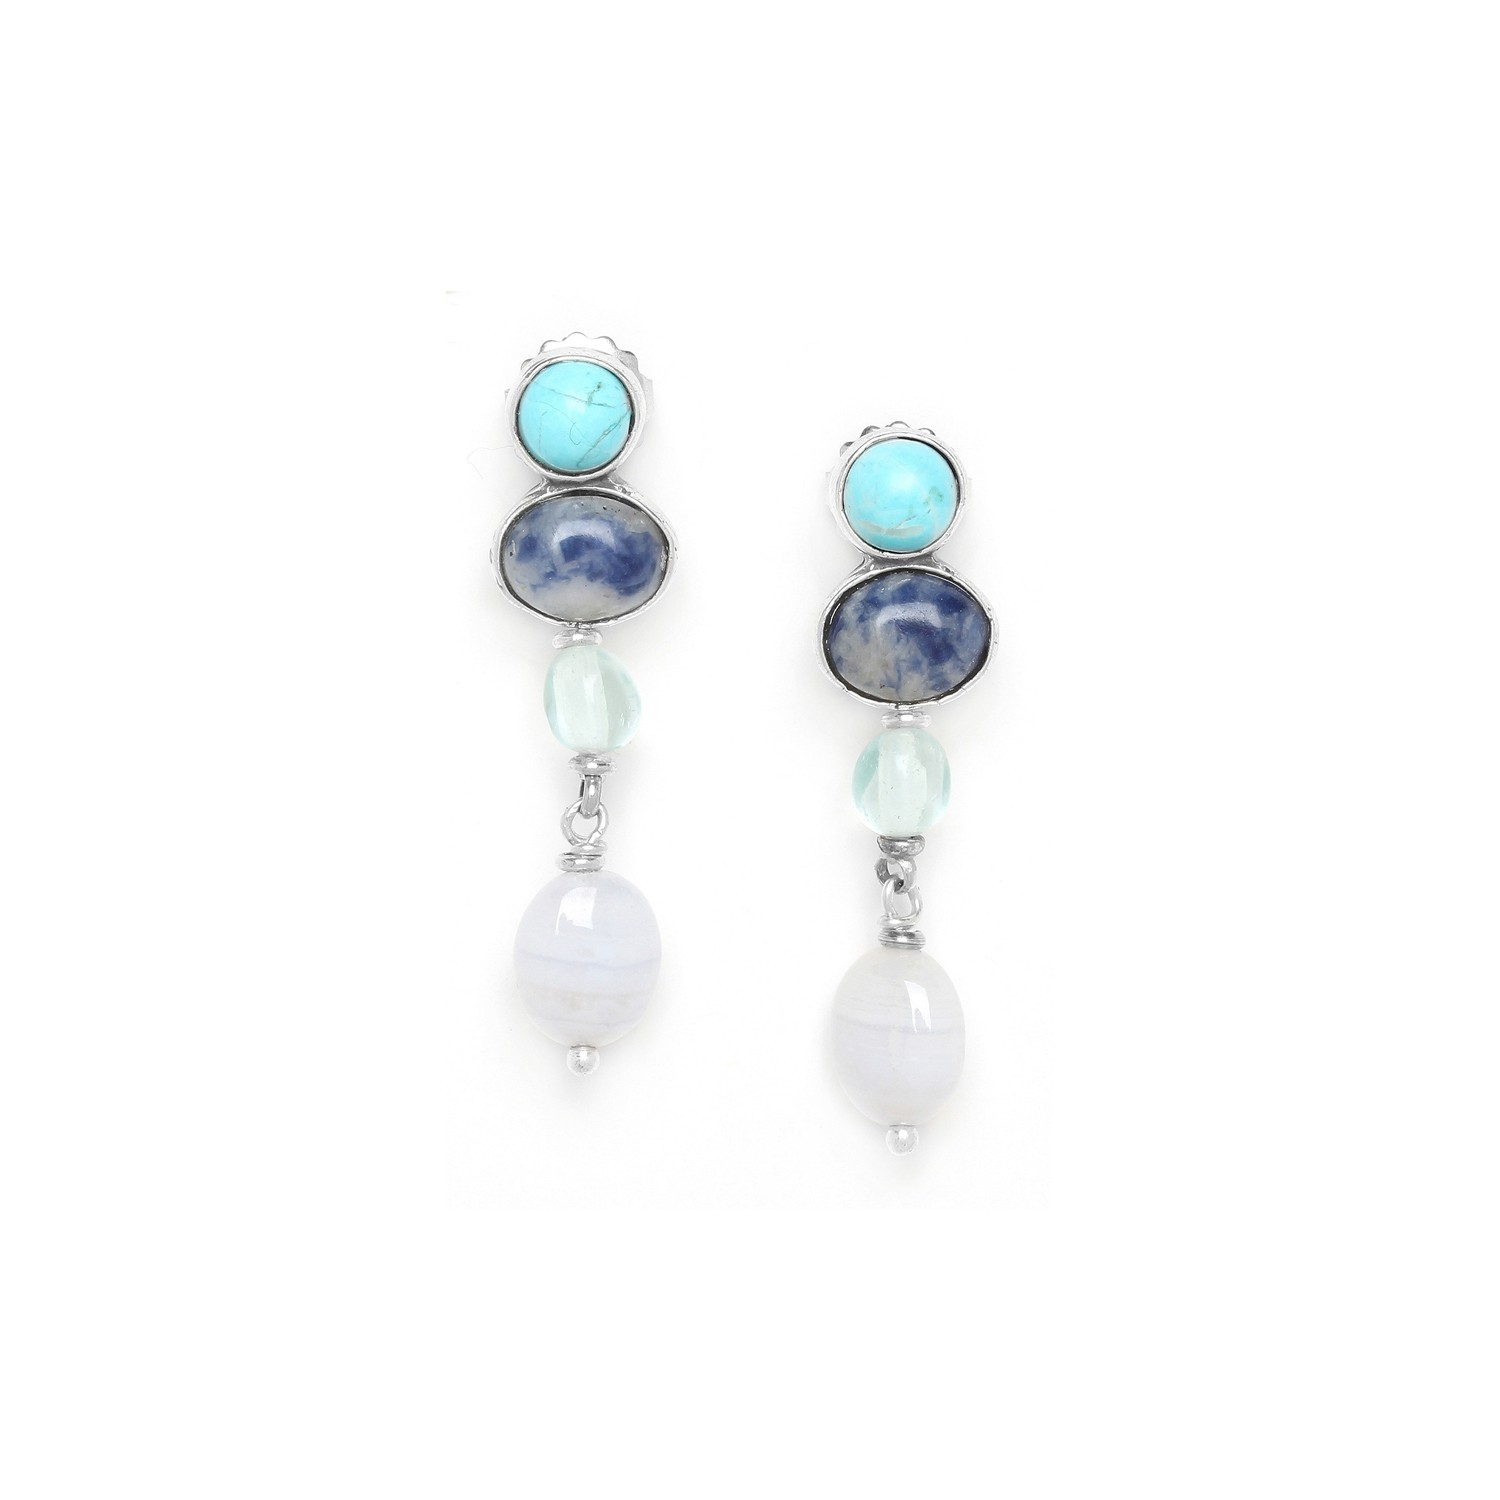 BLUE STONES 3 cabochons earrings